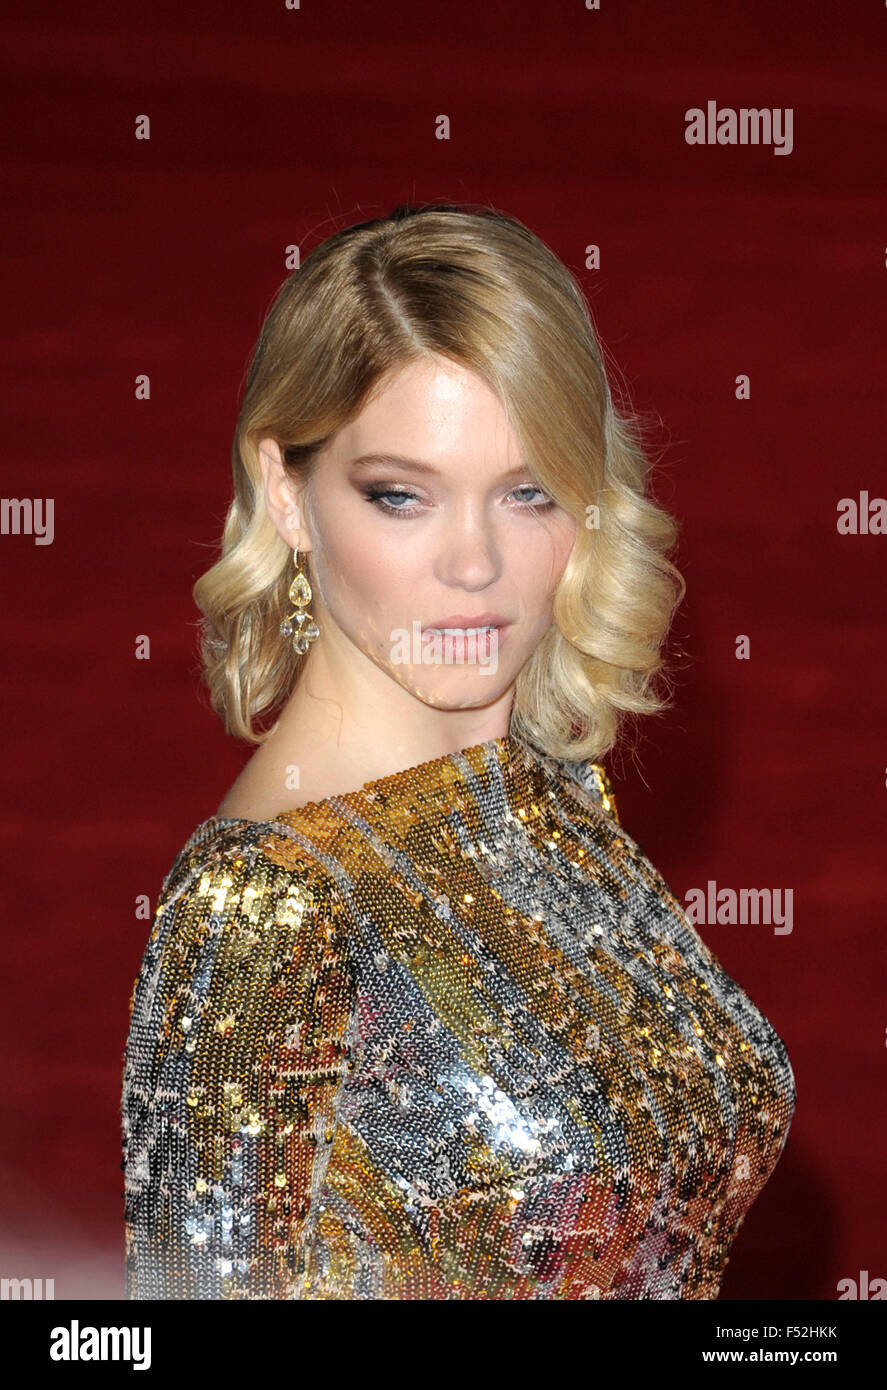 London, UK. 26th October, 2015. Lea Seydoux attending the Royal Film Performance at the World Premiere of SPECTRE - Stock Image